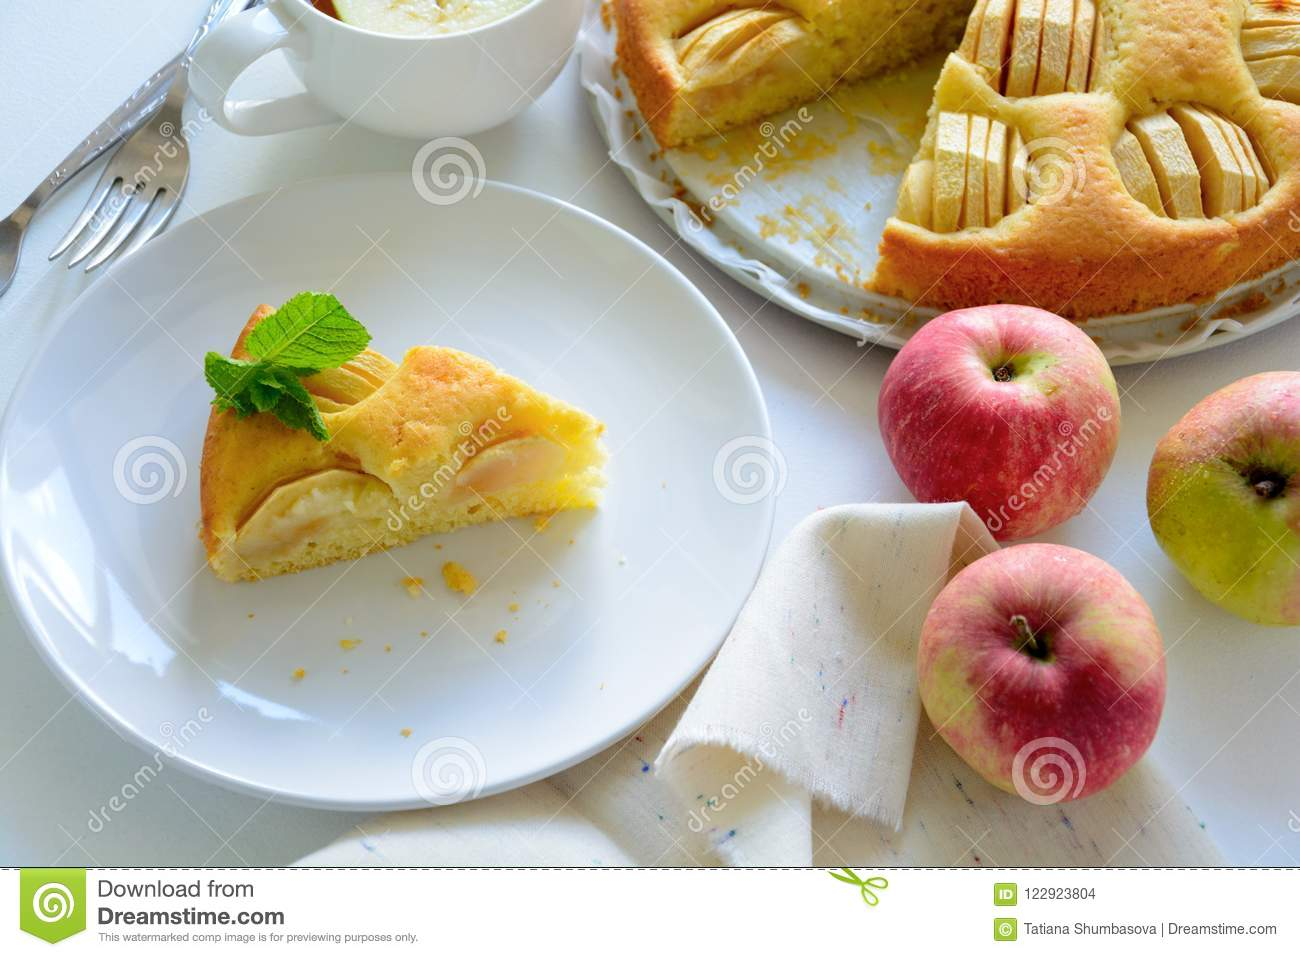 Slice of homemade apple pie on white plate. Tea time concept